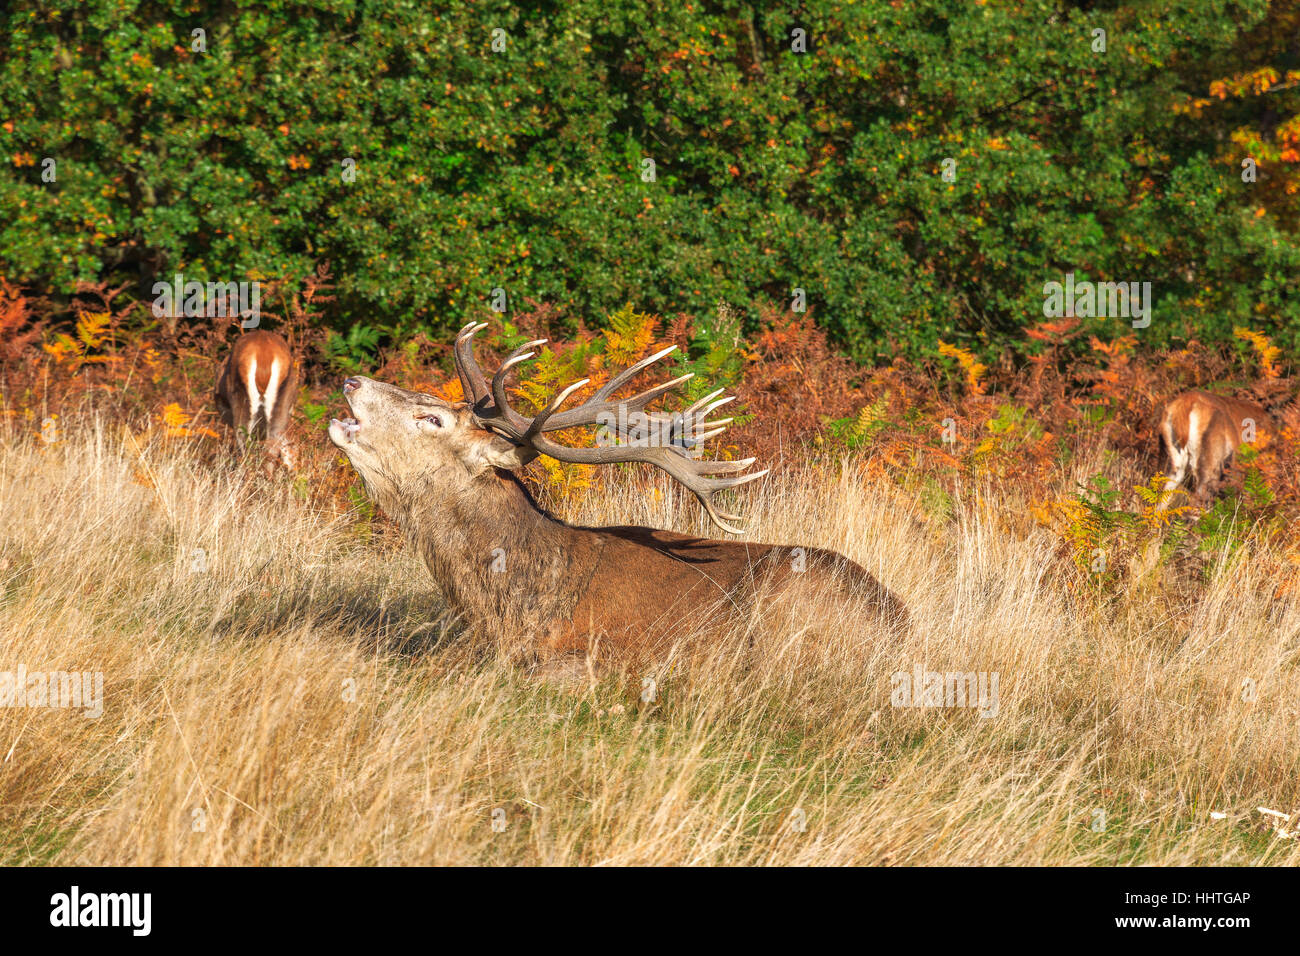 Stag roaring in Richmond Park, London - Stock Image